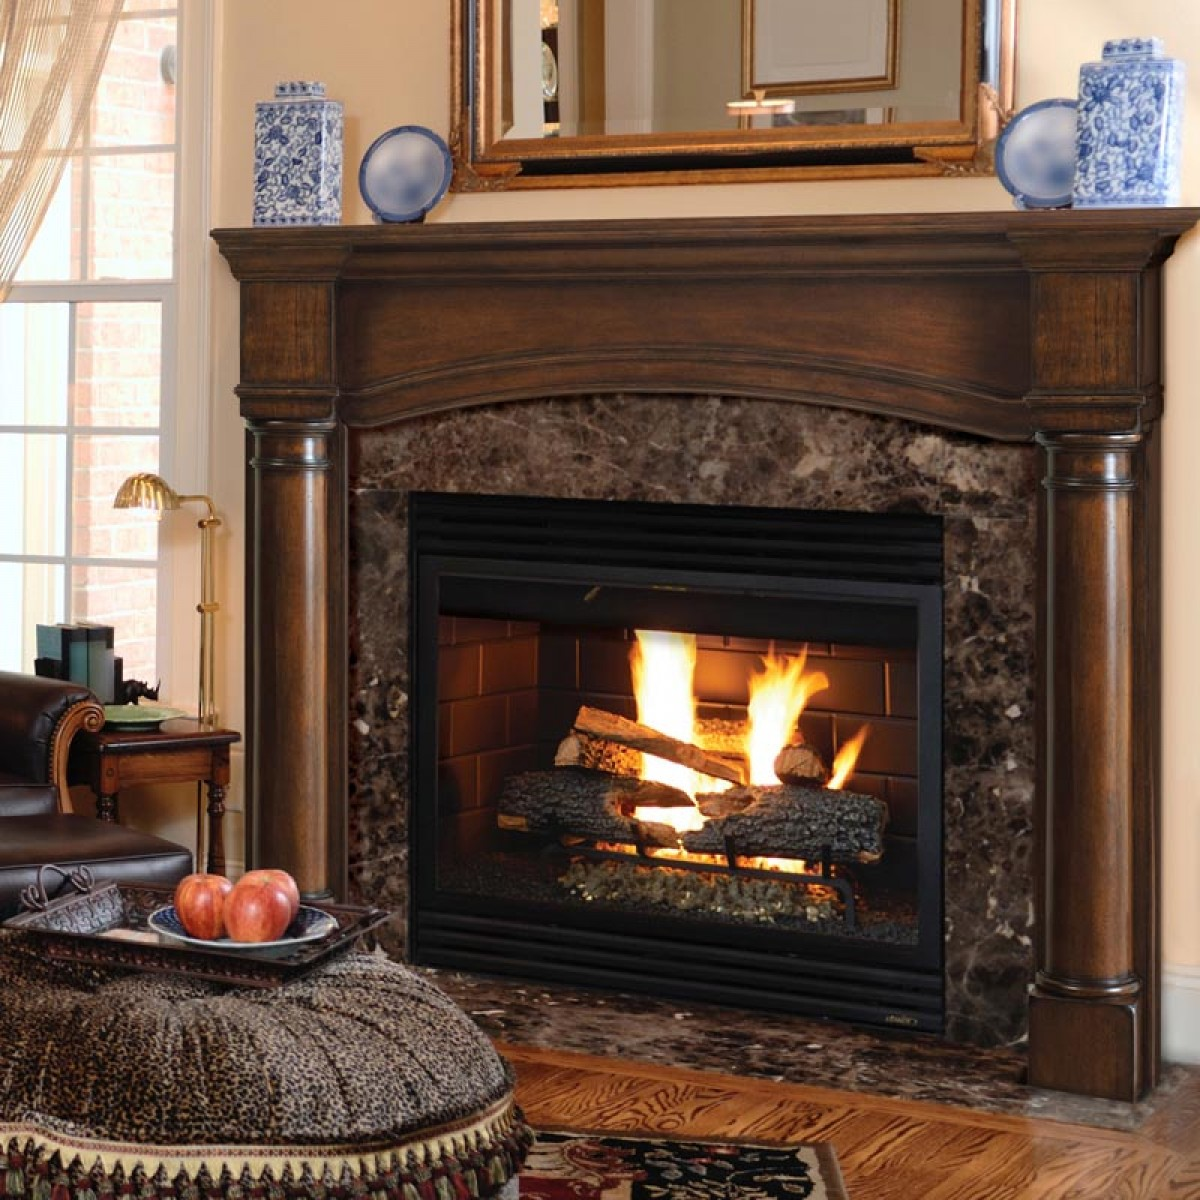 pearl mantels the princeton fireplace mantel. Black Bedroom Furniture Sets. Home Design Ideas